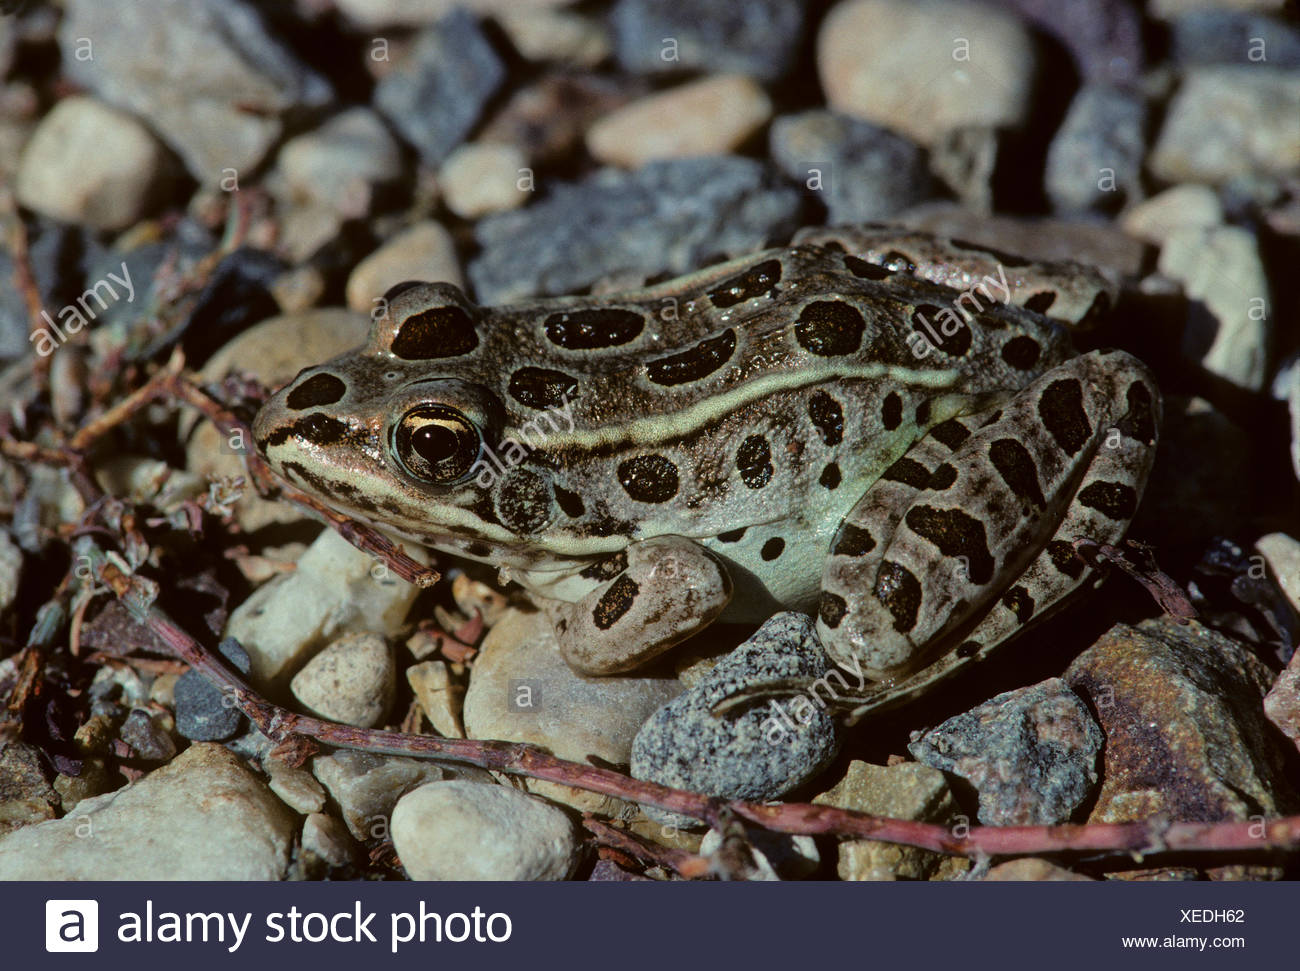 Northern leopard frog eating - photo#35